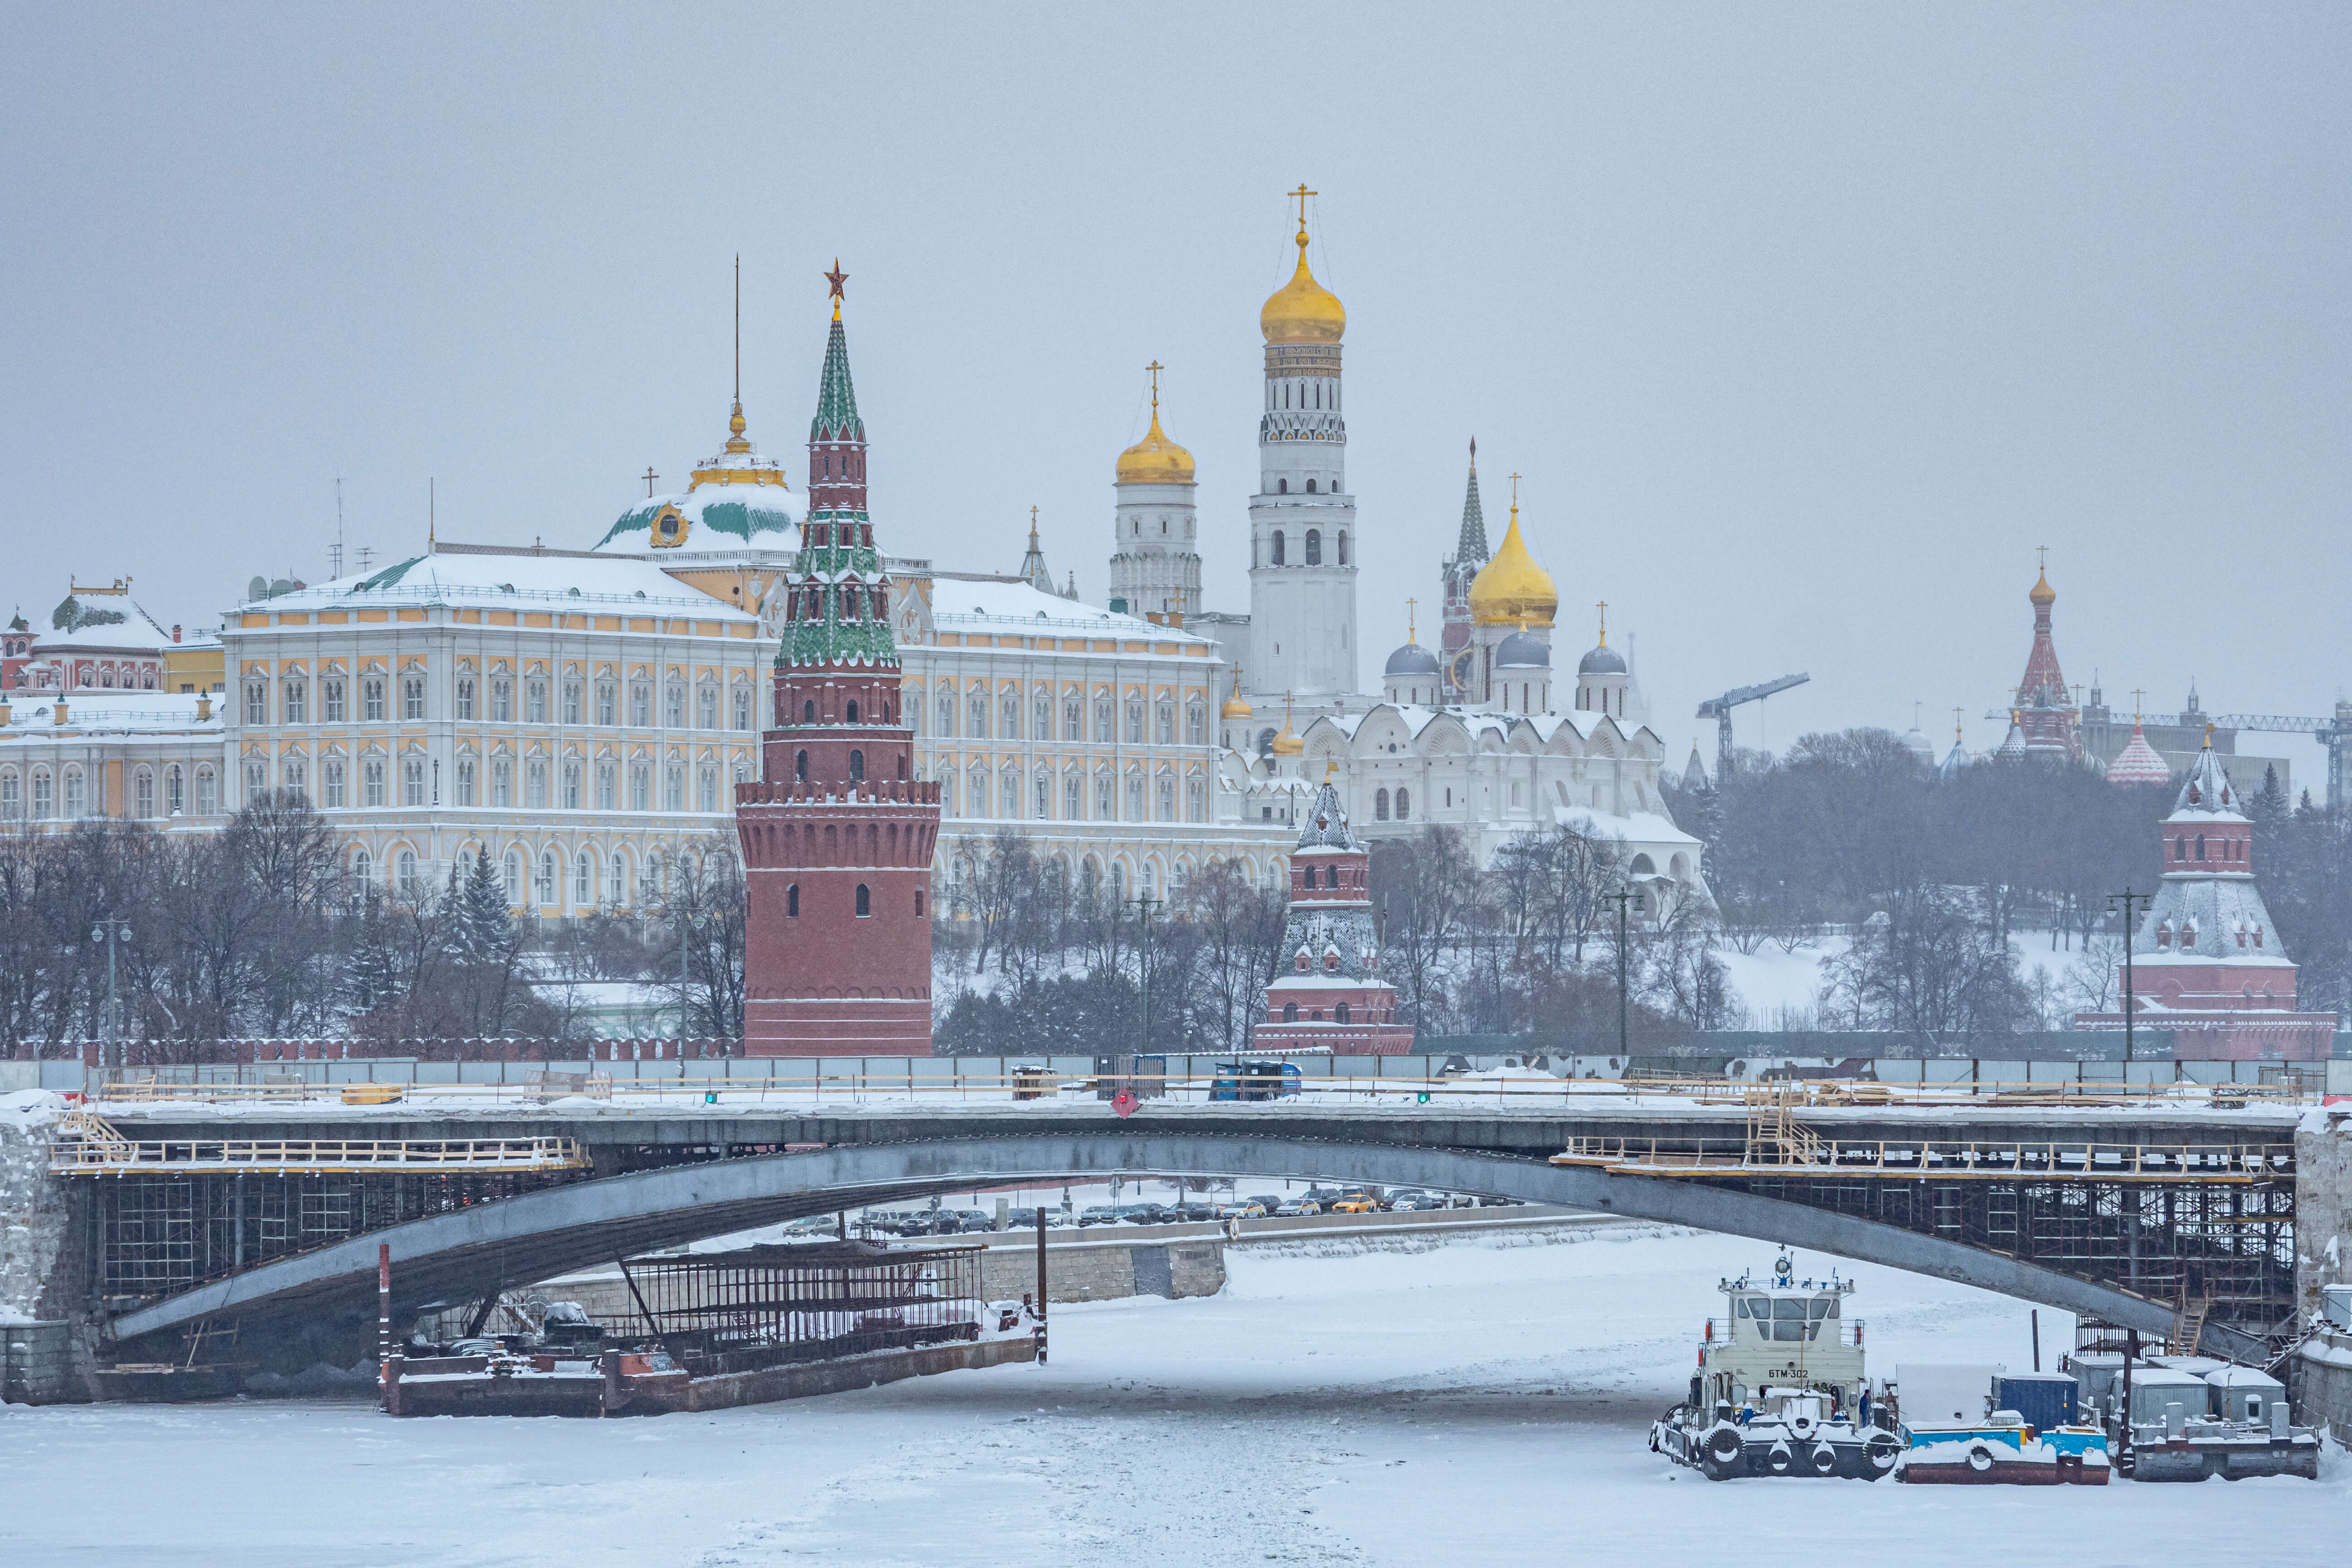 Moscow hit by snowfall Konstantin Kokoshkin/Global Look Press